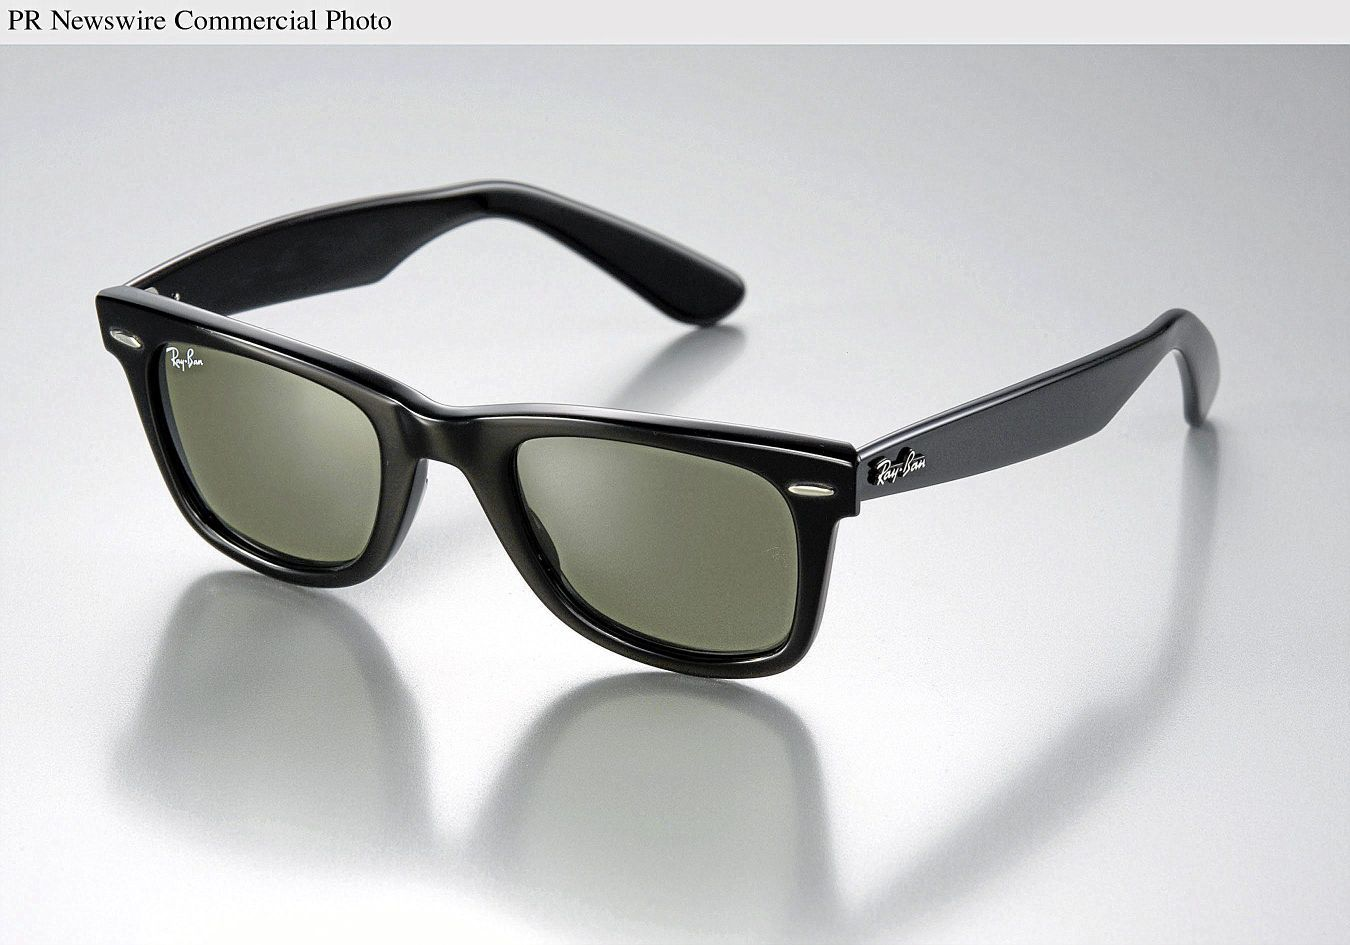 luxottica ray ban r90a  Ray Ban Owned Luxottica